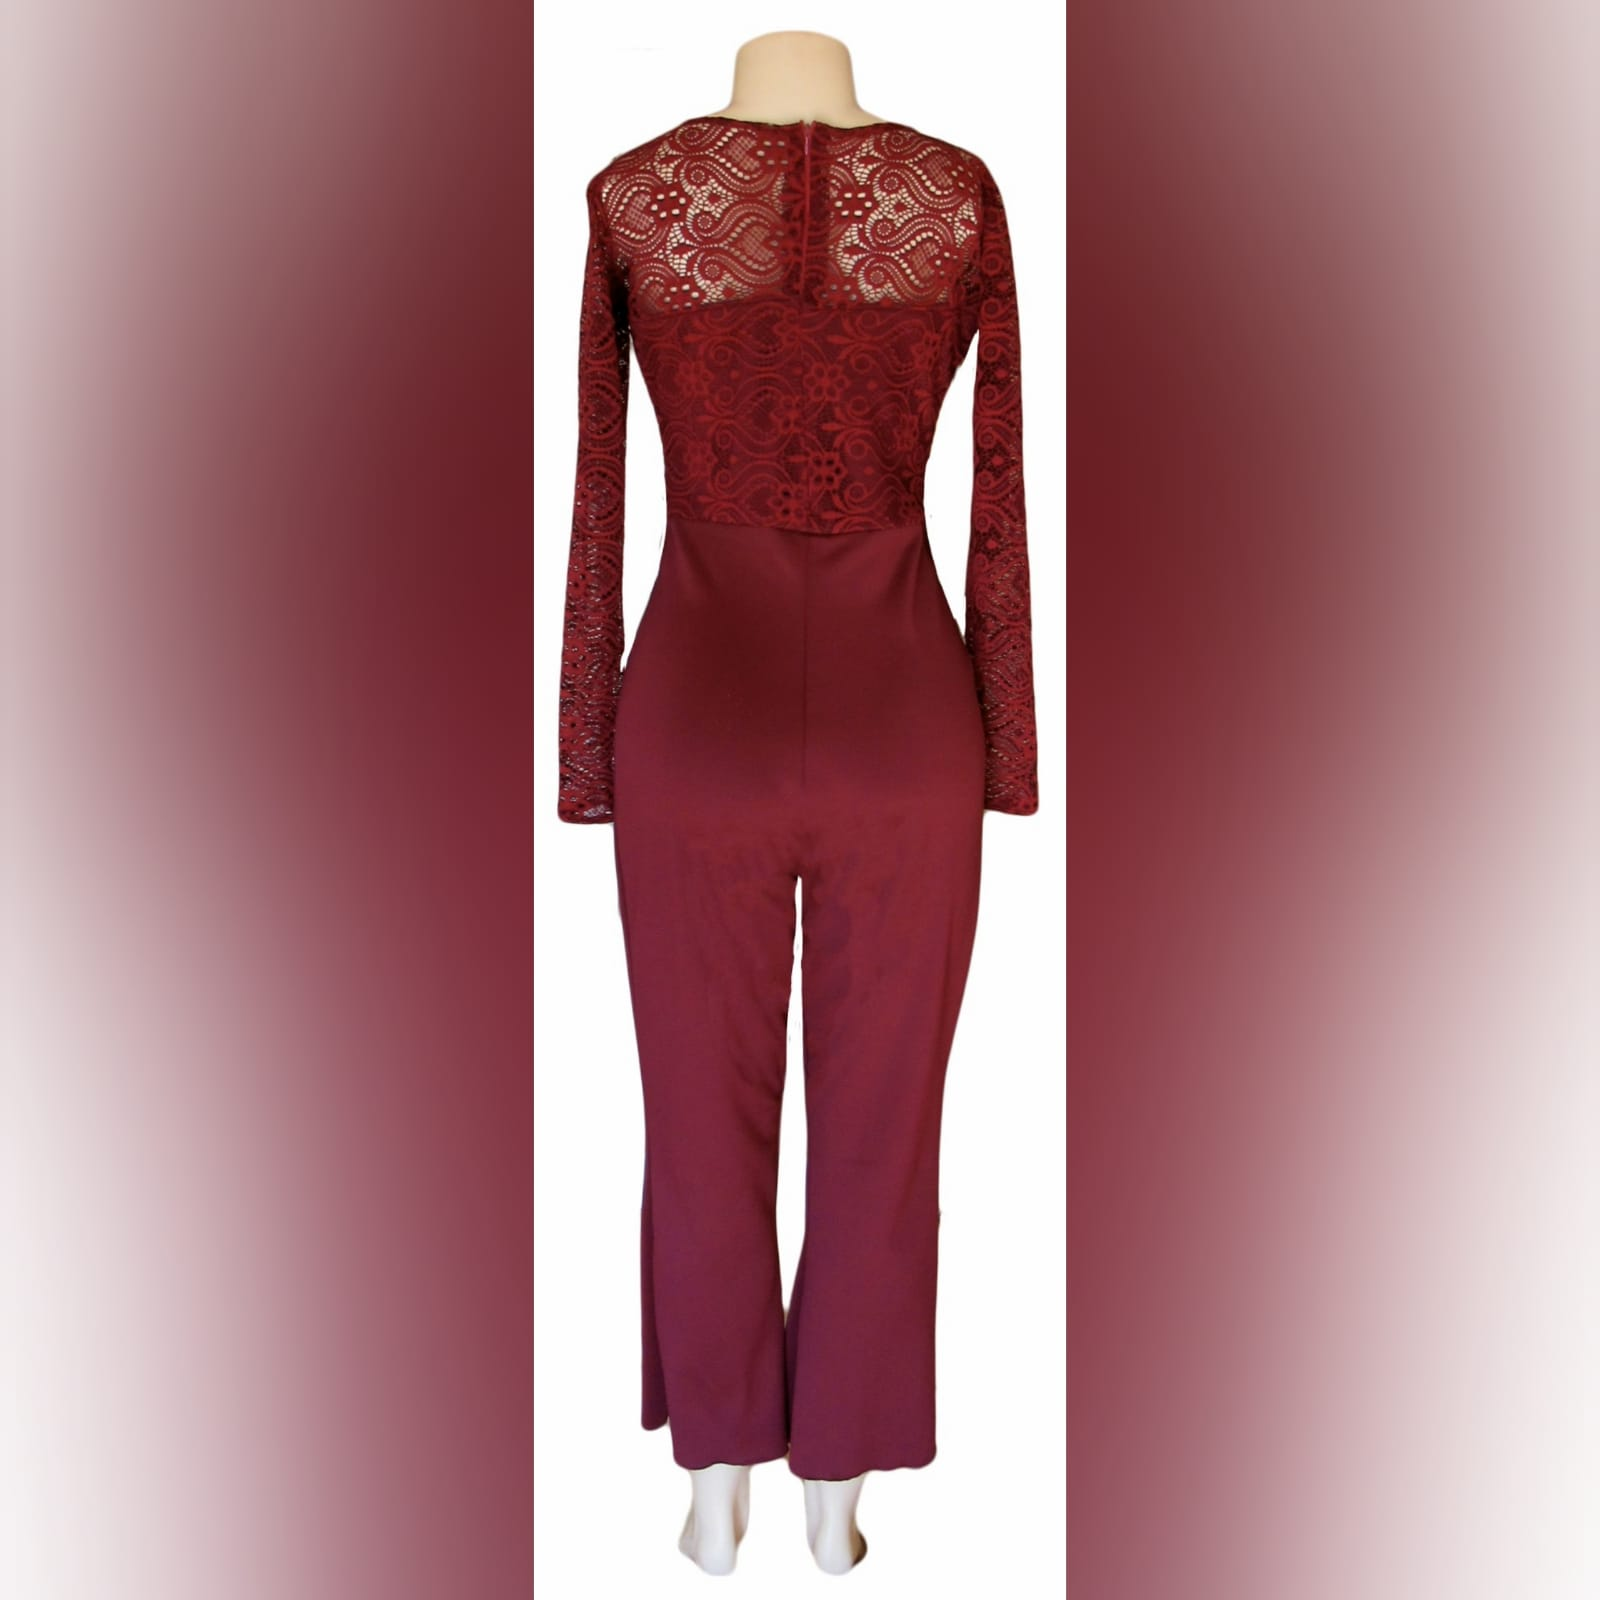 Maroon long leg evening wear bodysuit 5 maroon long leg evening wear bodysuit with a lace bodice and lace detail on the hips. With long lace sleeves.